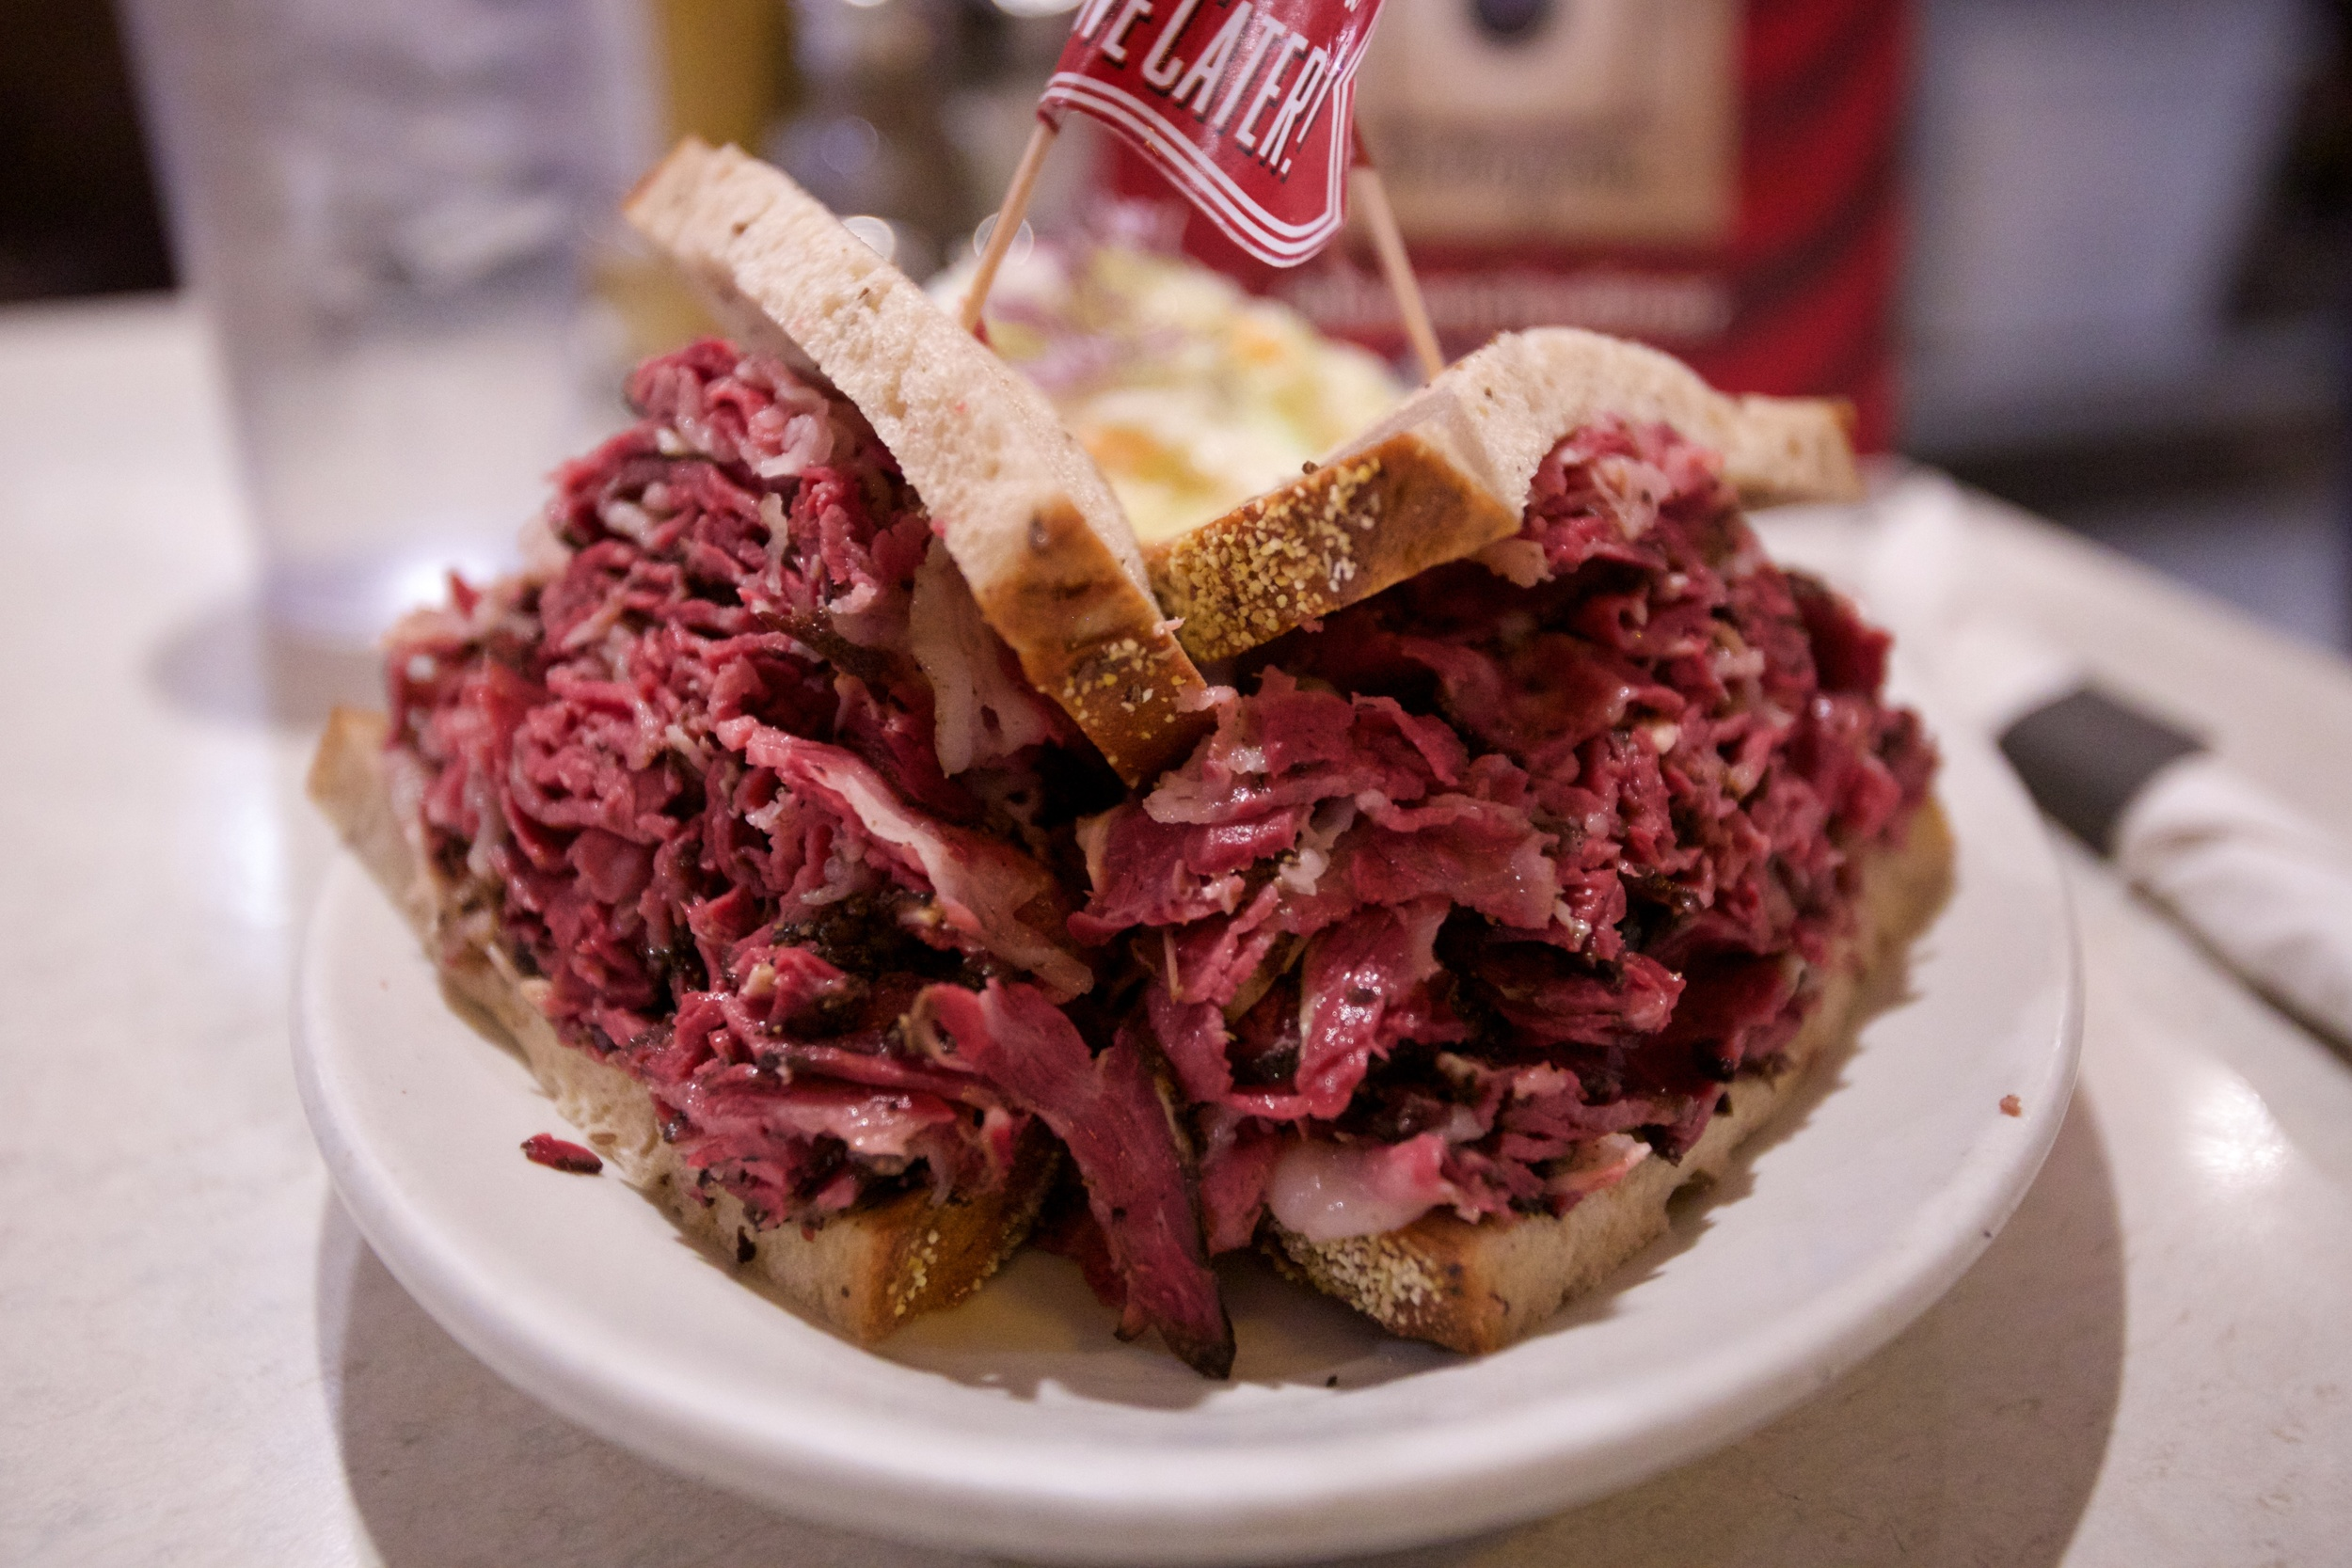 Pastrami sandwich at eleven city diner